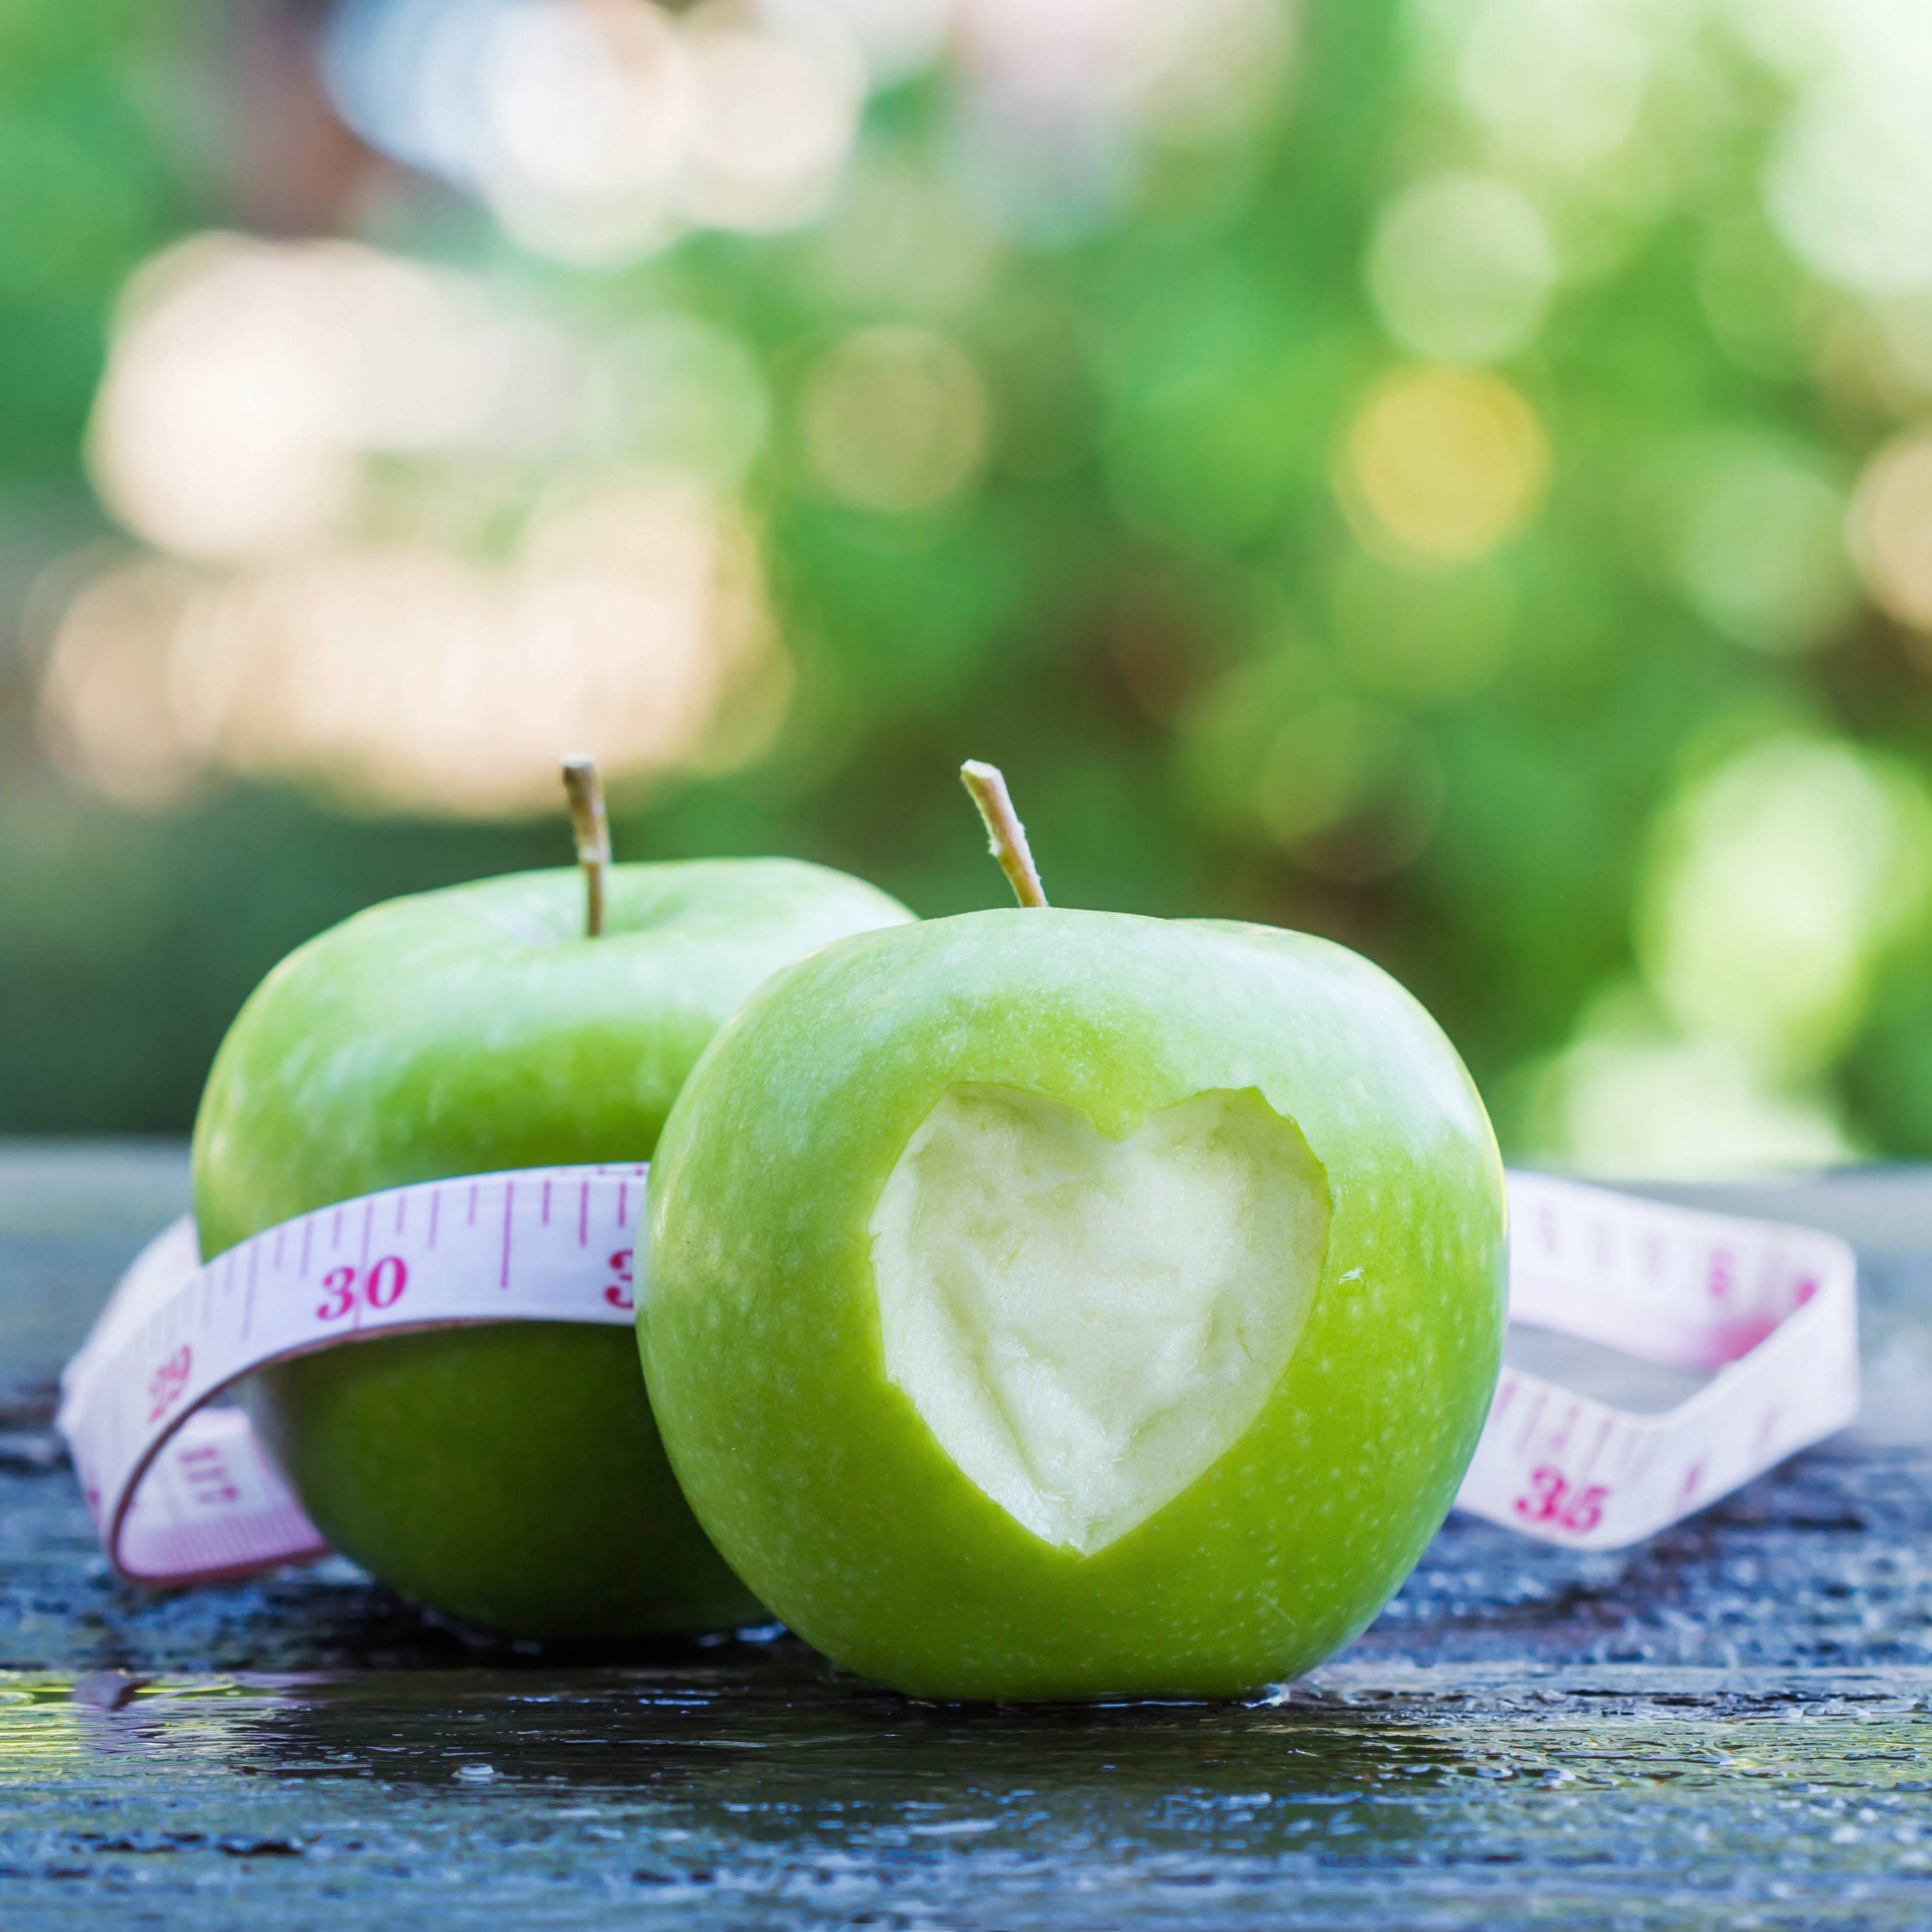 green apples with a heart carved in the skin and a tape measure around the apple representing weightloss and healthy eating